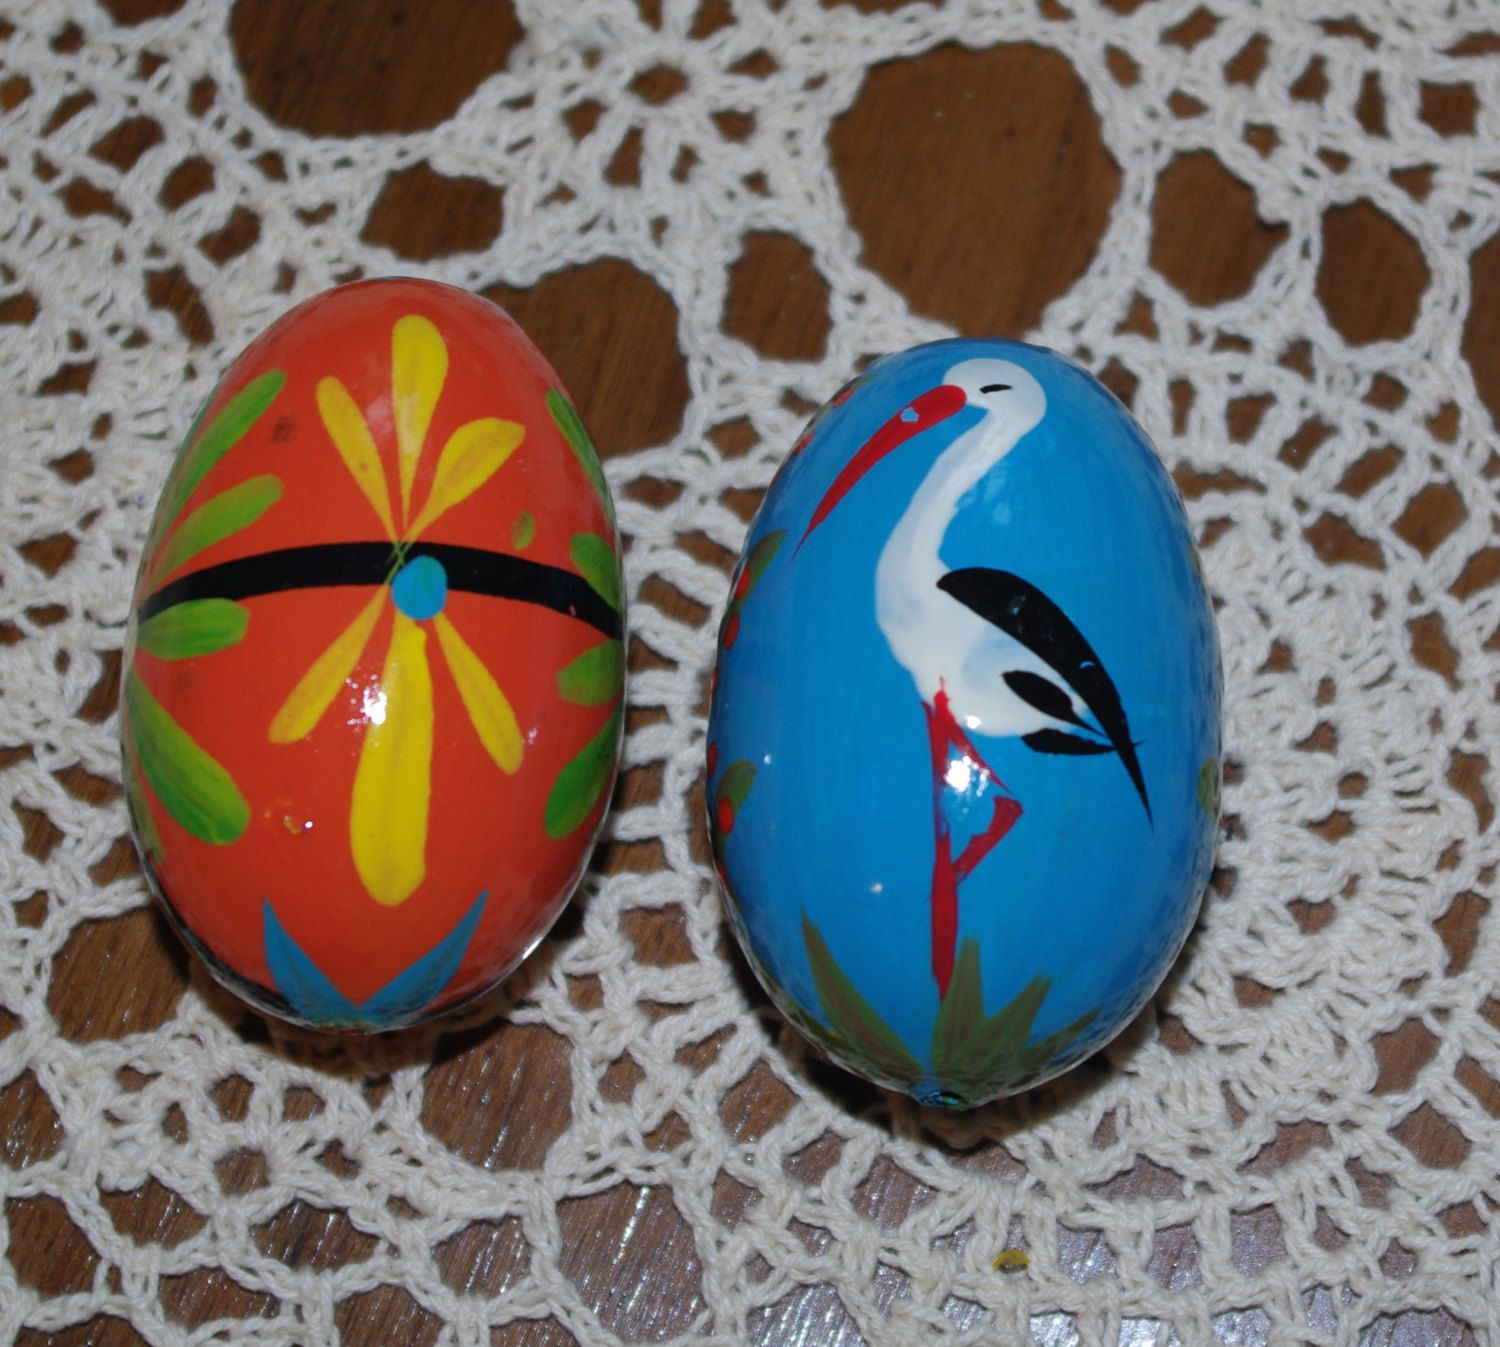 polish easter eggs pysanky hand painted decorative wood eggs pysanka set of 2 stork floral flowers - Images Of Easter Eggs 2